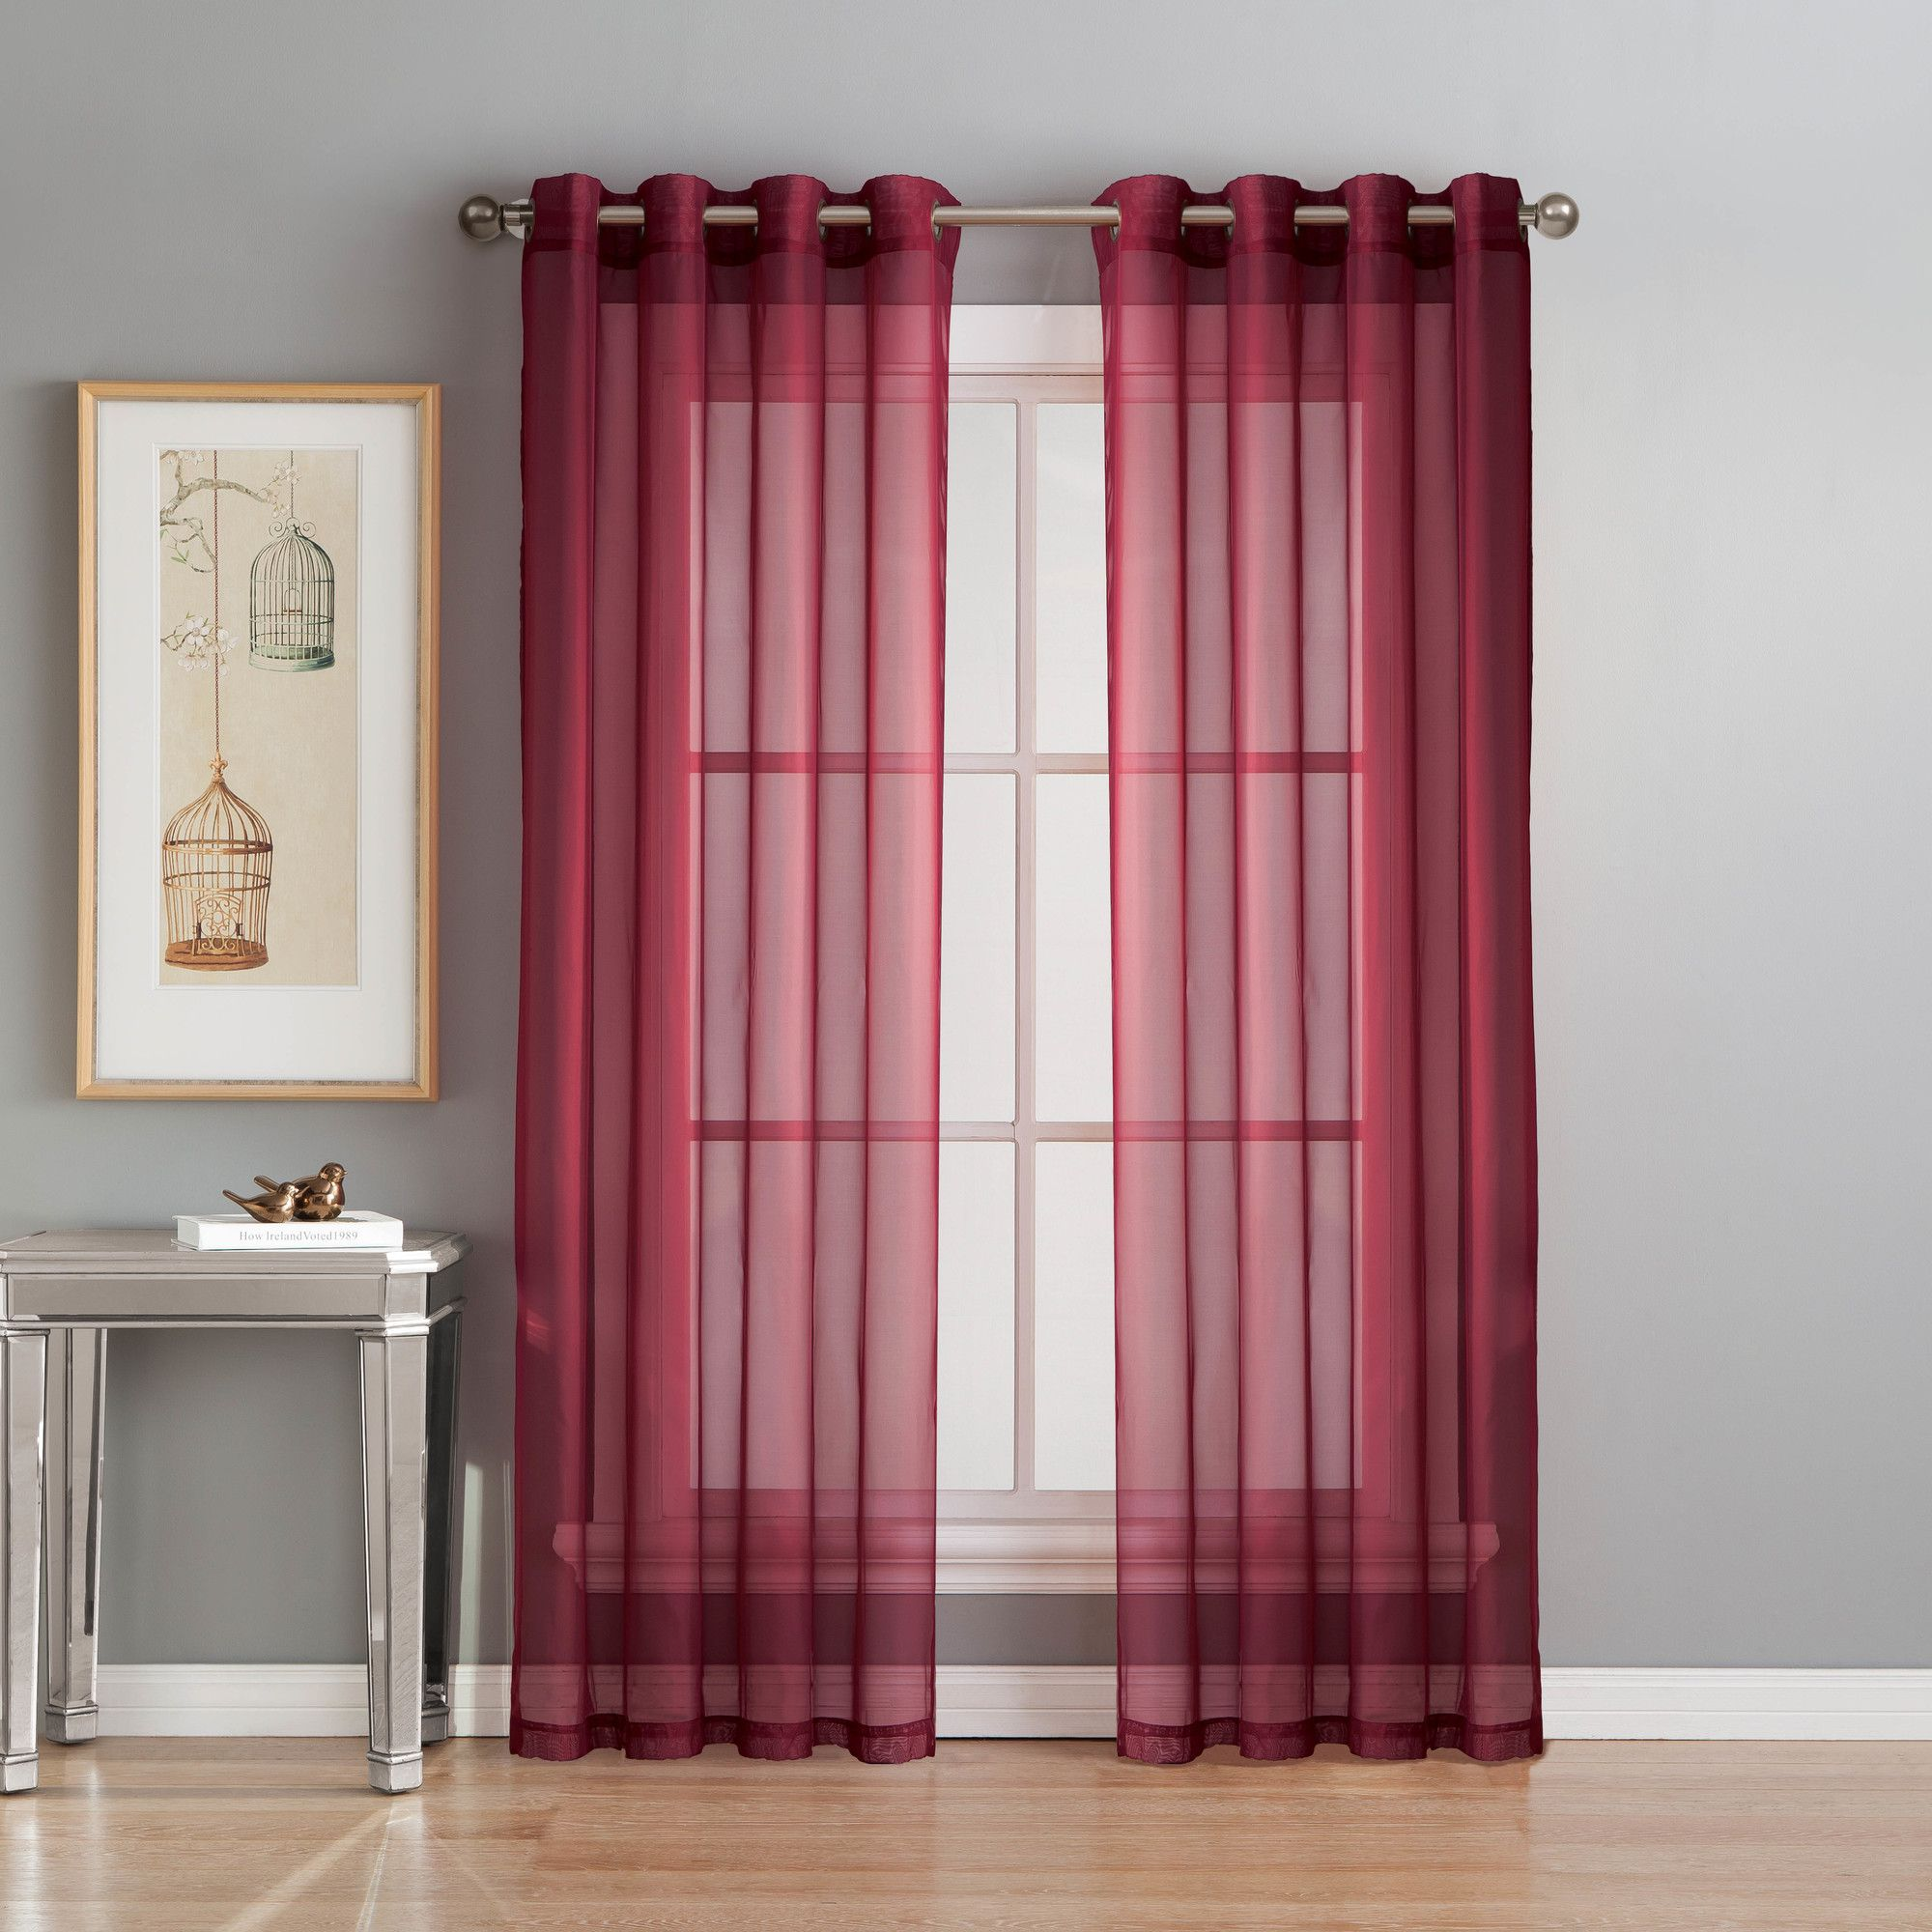 Diamond Sheer Voile Extra Wide Grommet Single Curtain Panel